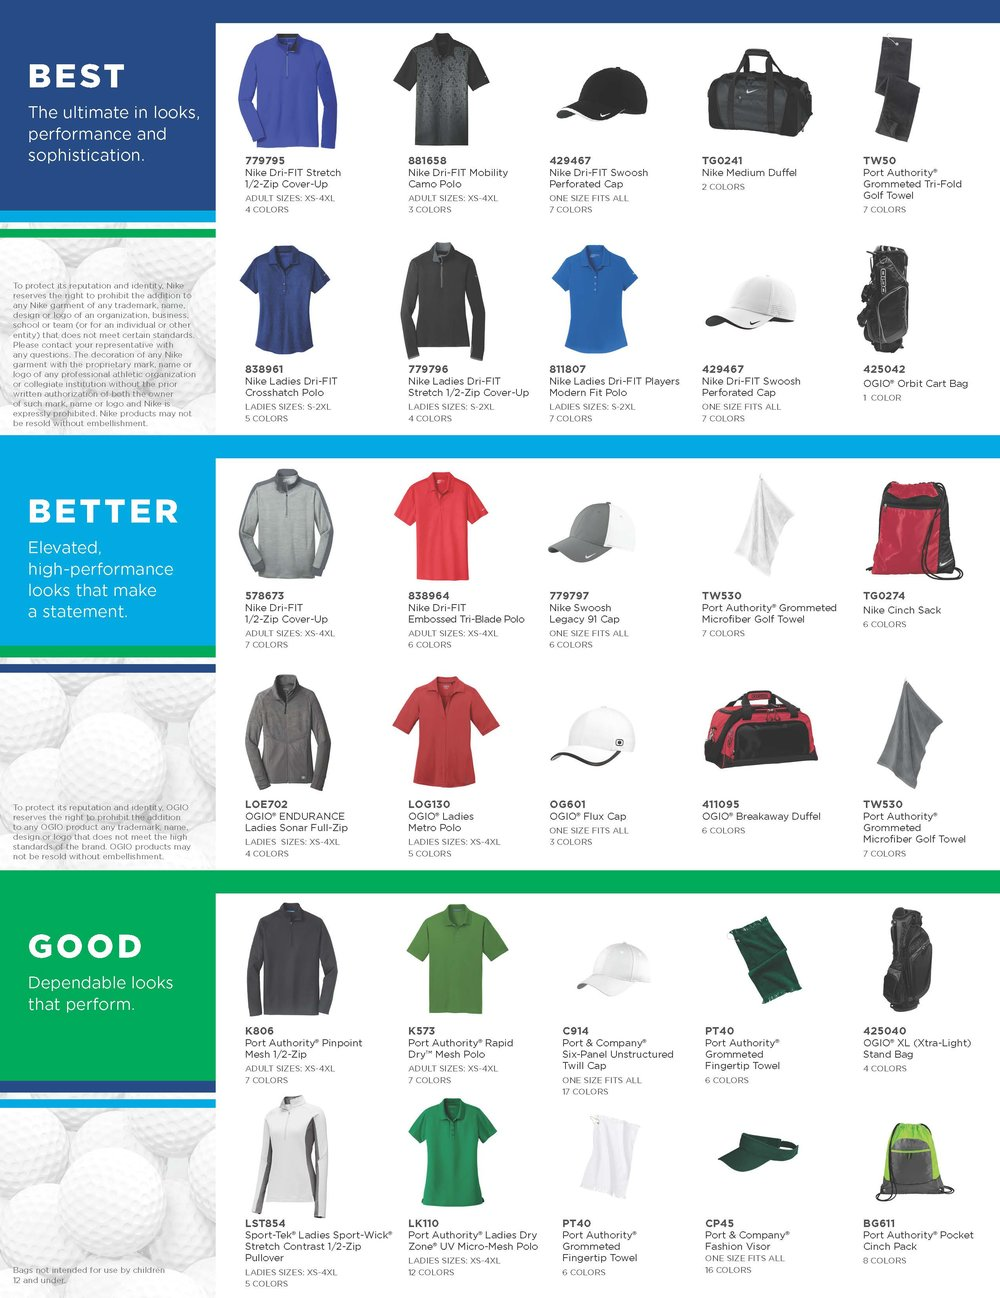 logounltd_laser_etching_embroidery_screen_printing_apparel_uniform_custom_tshirts_dye_sublimation_kirkland_bellevue_seattle_redmond_branded_merchandise_promotional_products_logo_unltd_golf (1)_Page_2.jpg